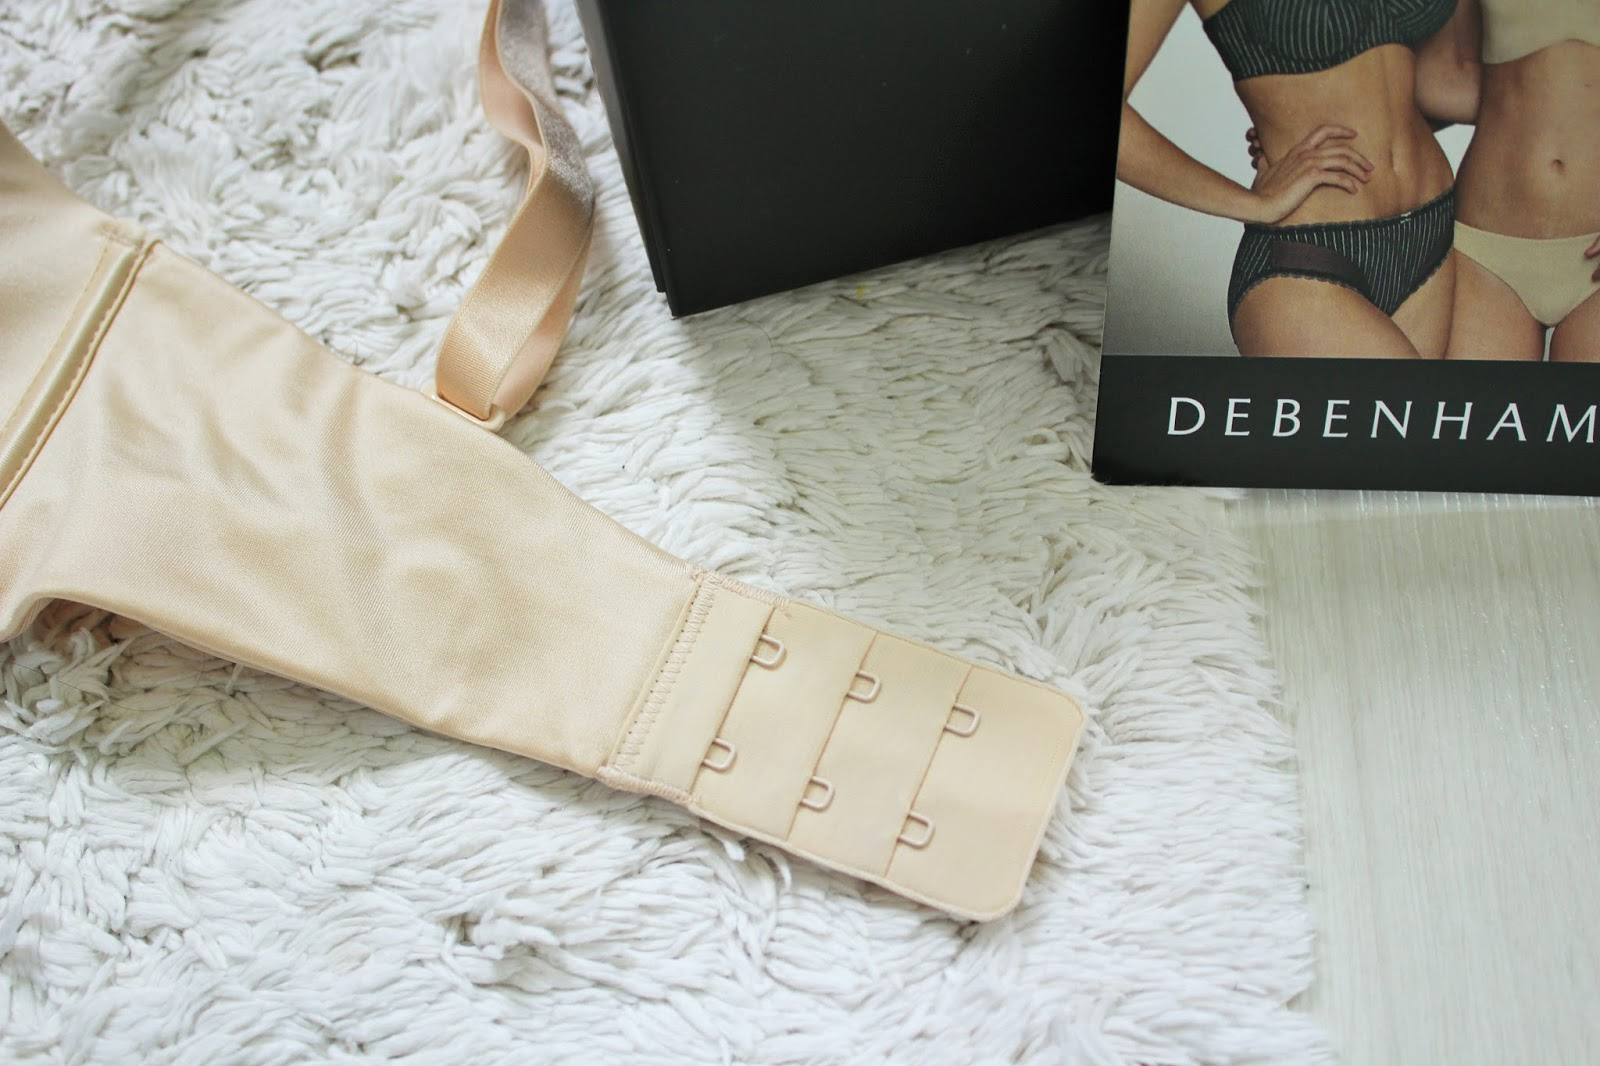 Debenhams Bra Fit Campaign Plus Giveaway! #knowyoursize 8 24 Hour Strapless Bra